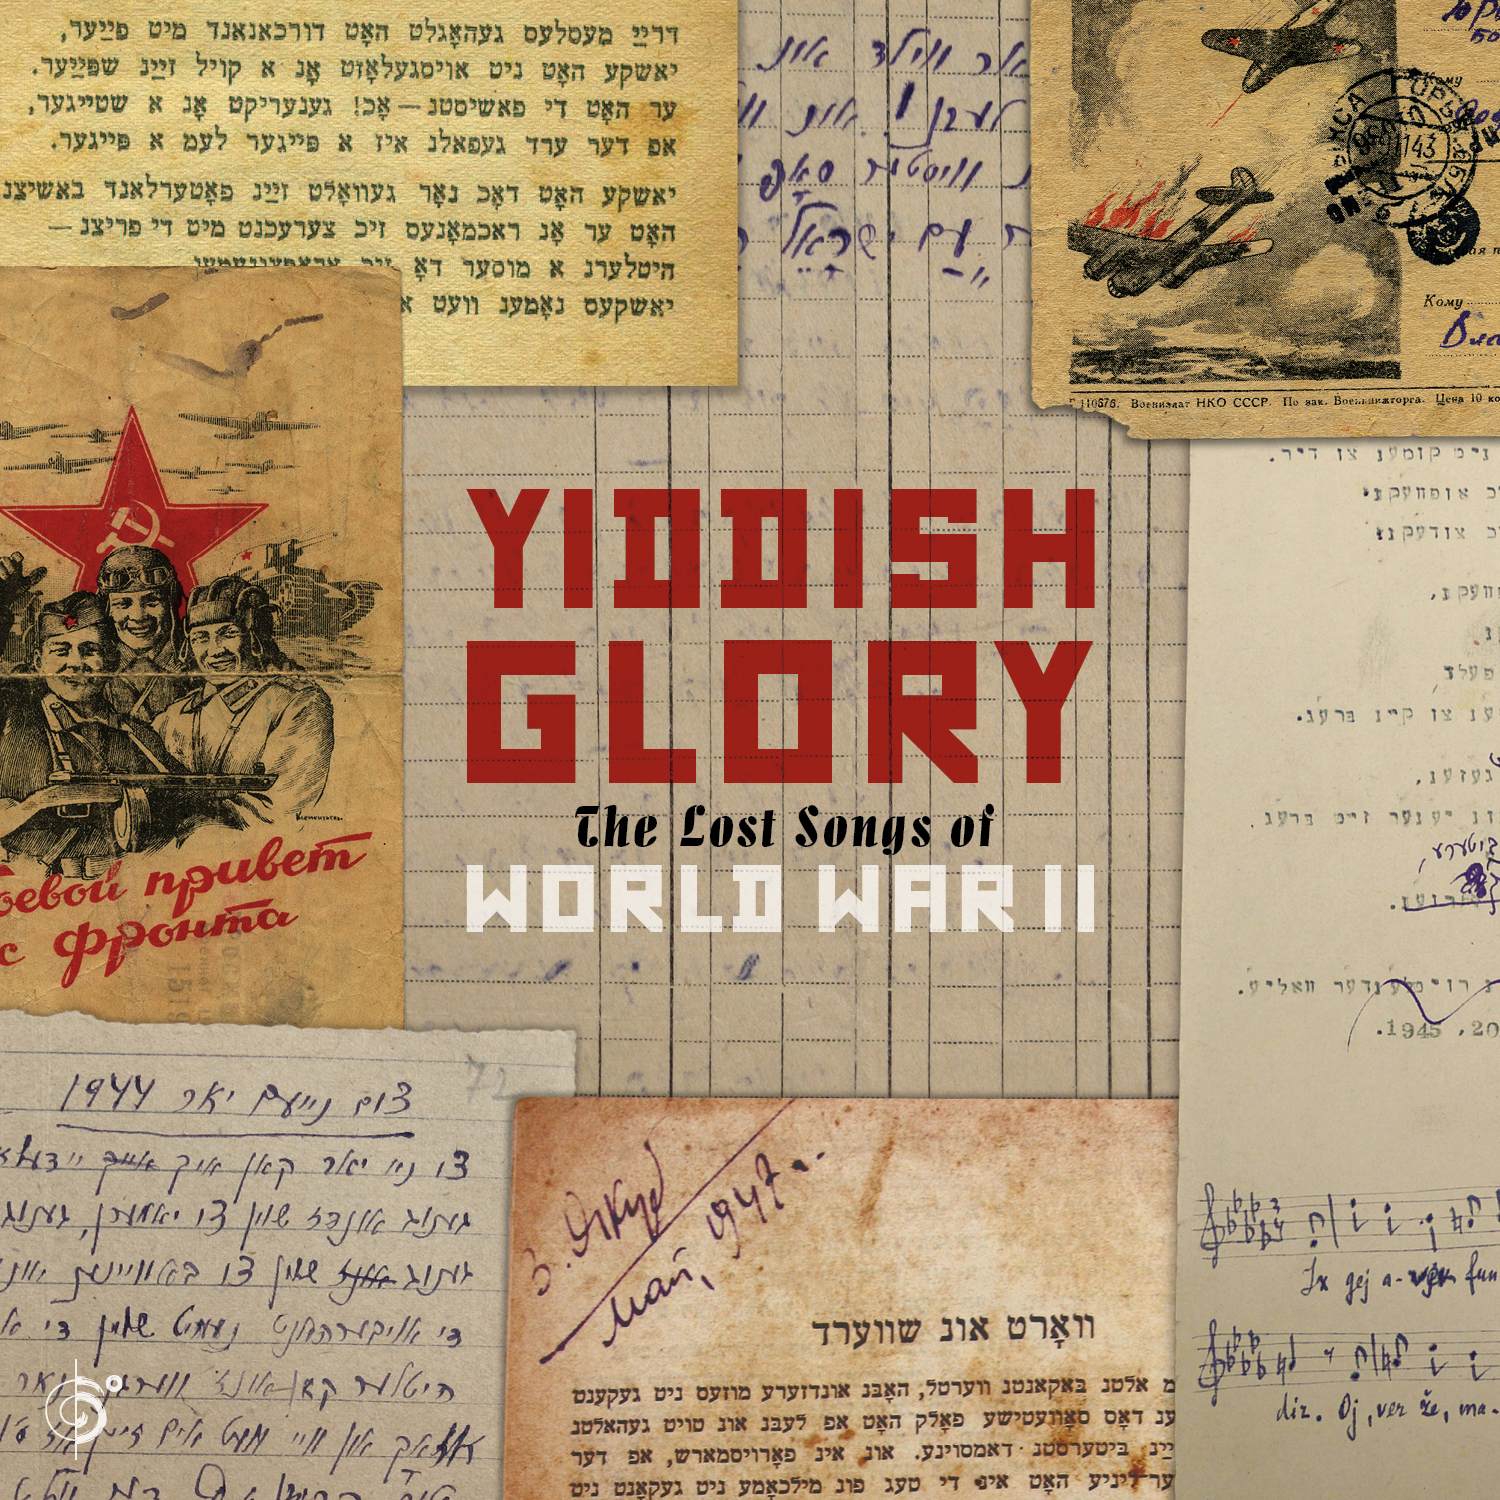 Historic Music Discovery – The Lost Songs of WWII Uncovered in Yiddish Glory from Six Degrees Records out Feb. 23